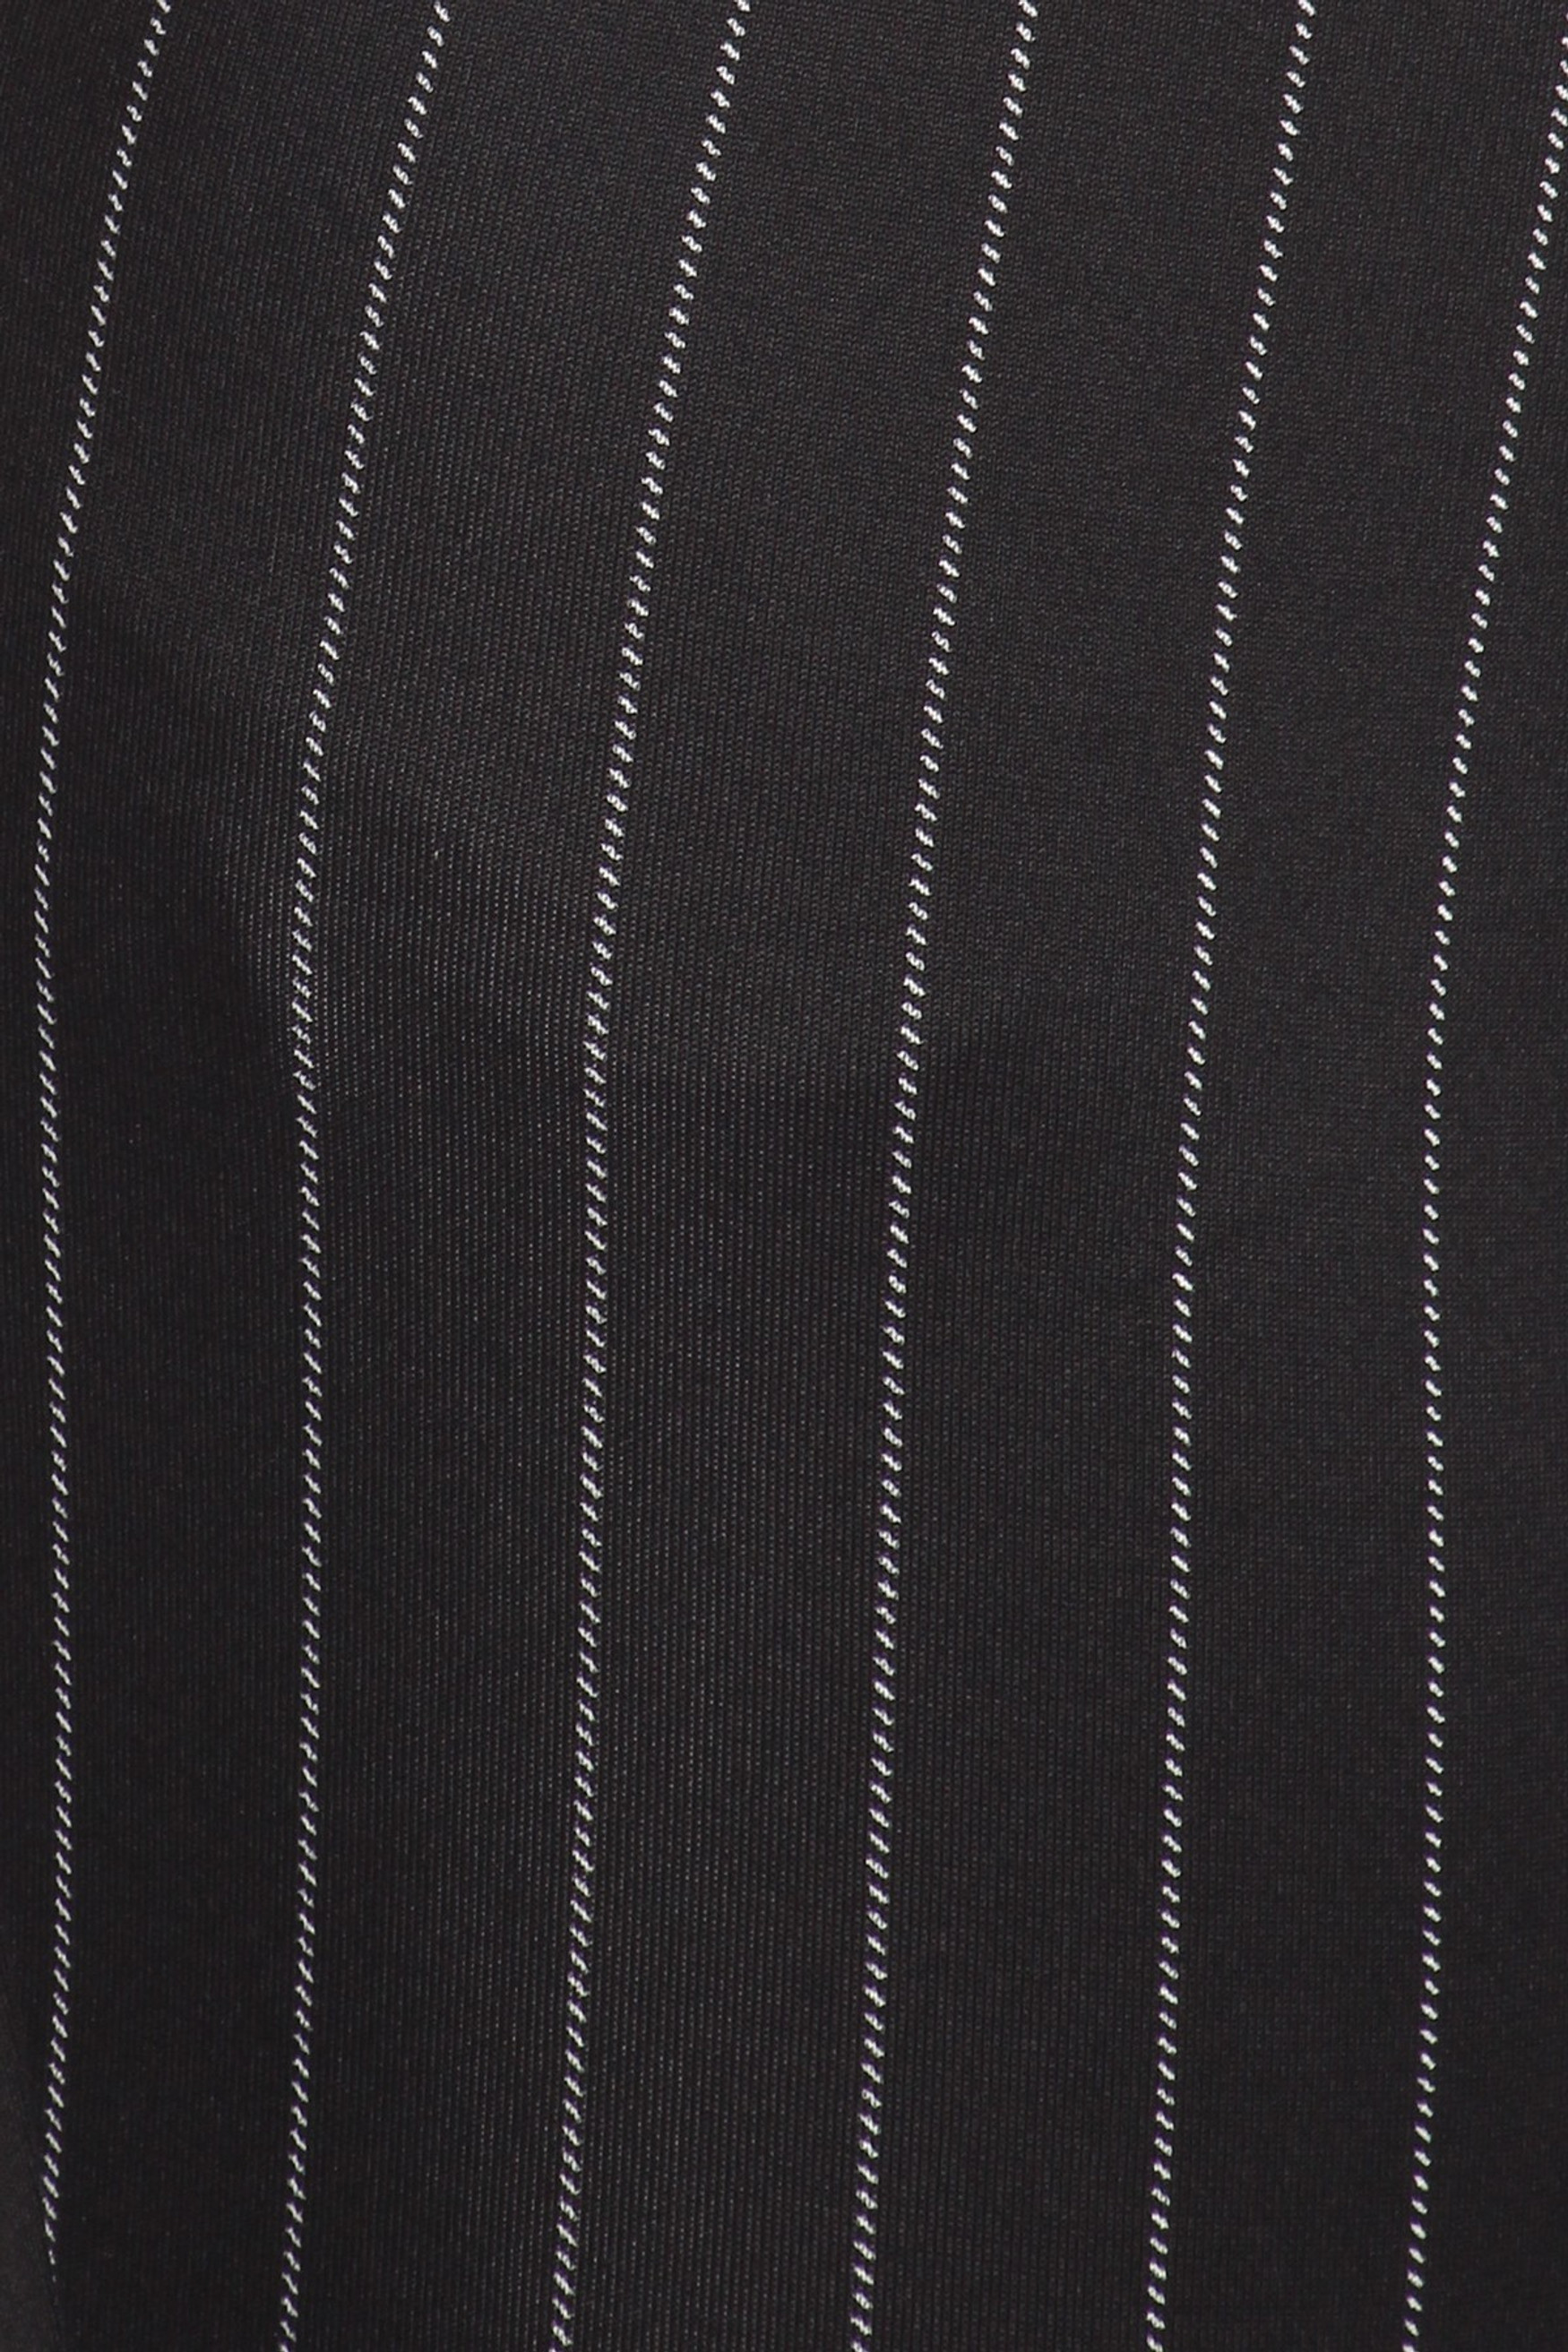 Black and White Pinstripe High Waisted Body Sculpting Treggings with Pockets